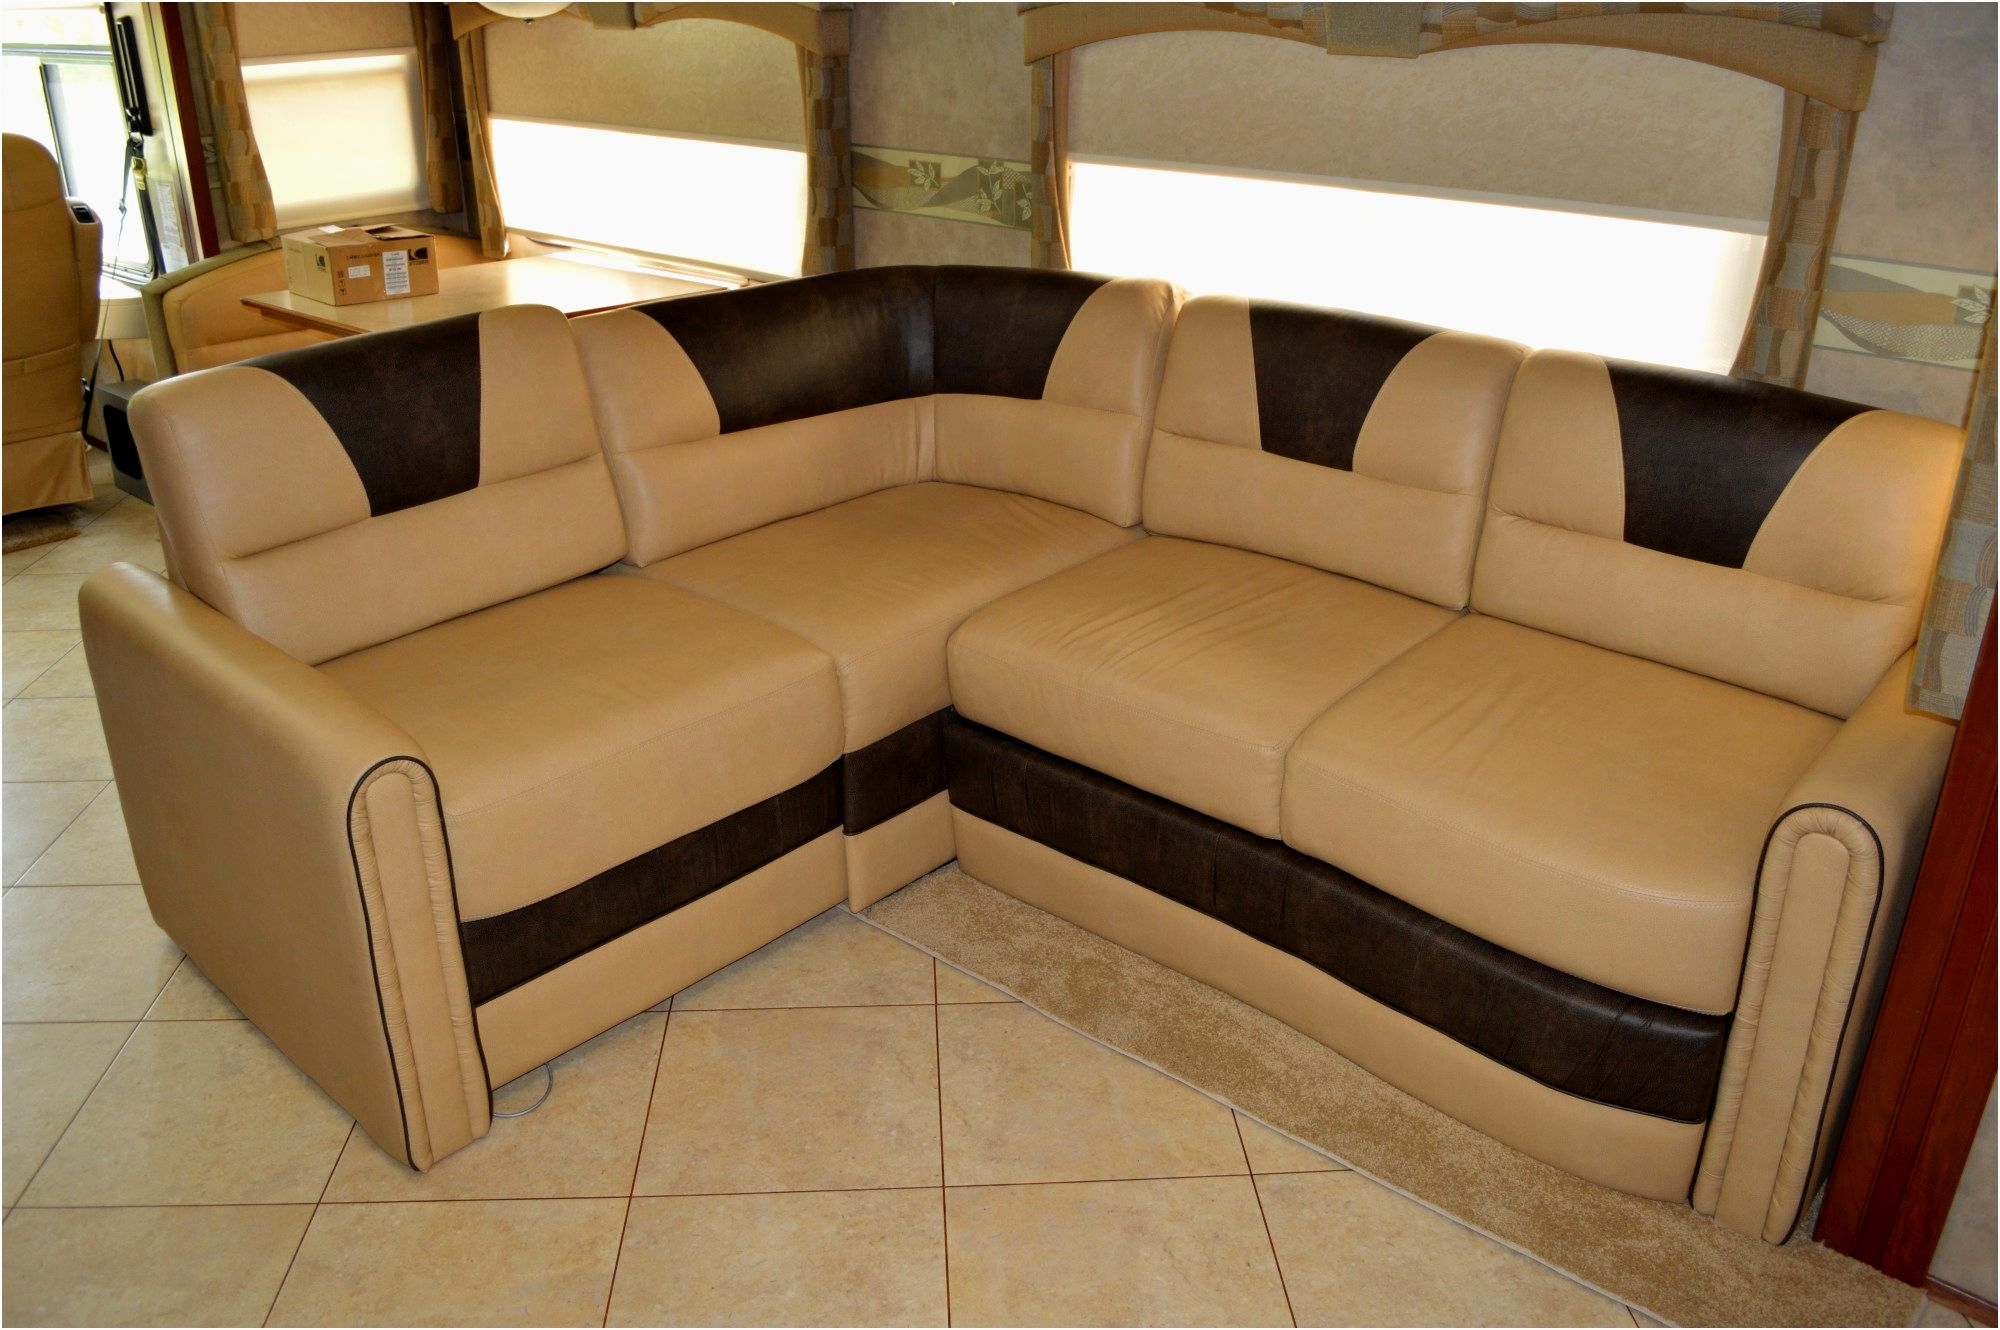 elegant flexsteel leather sofa photograph-Fantastic Flexsteel Leather sofa Architecture